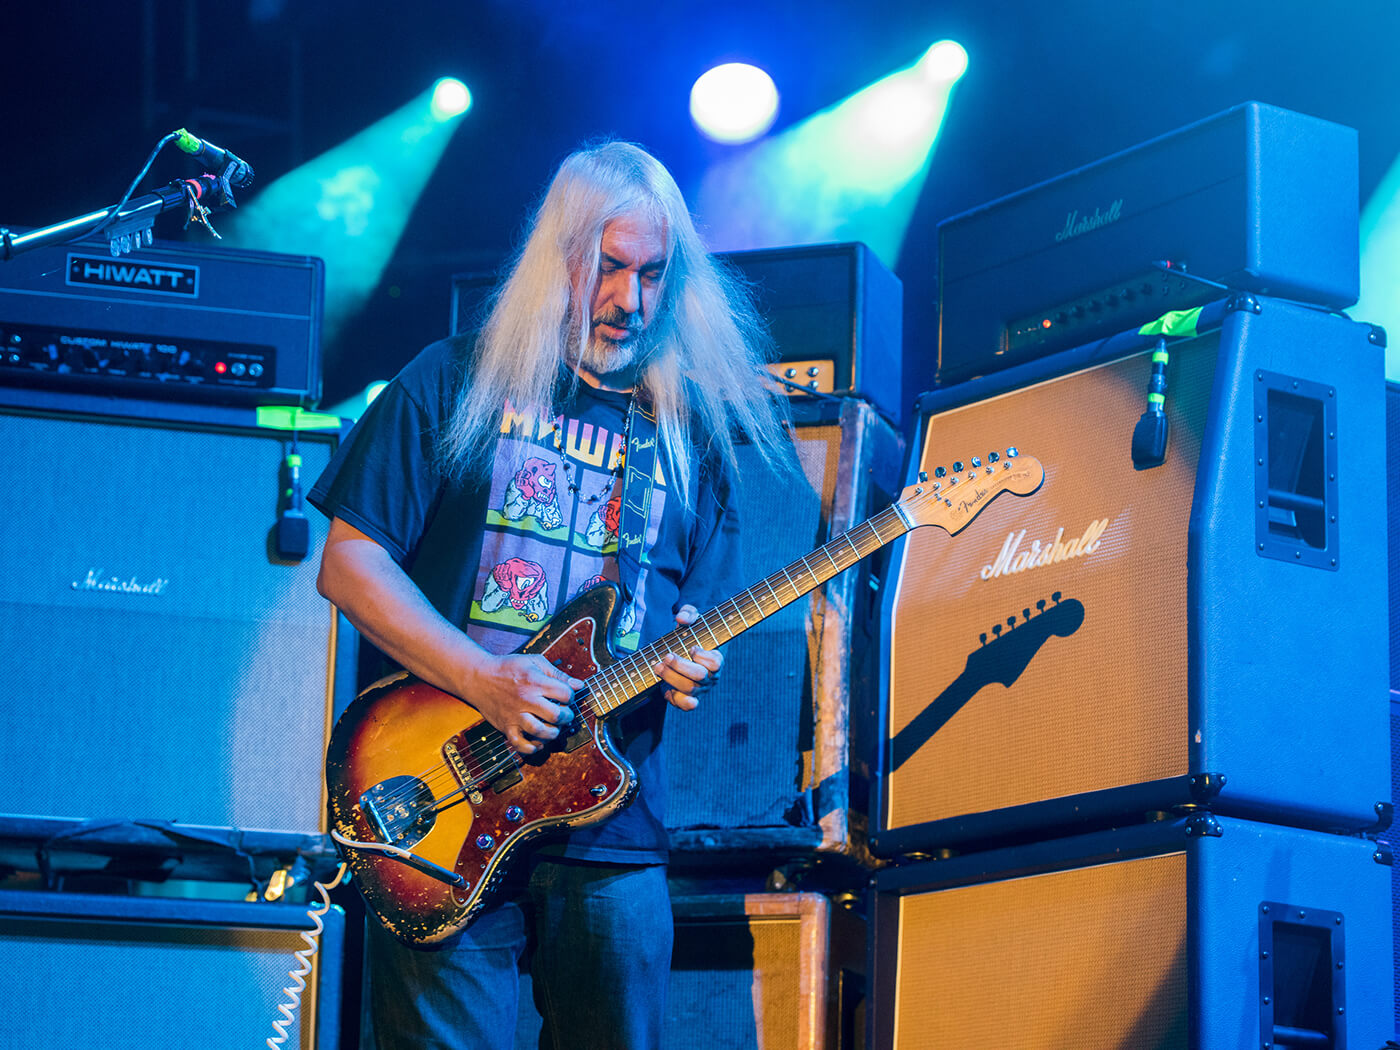 J Mascis of Dinosaur Jr.